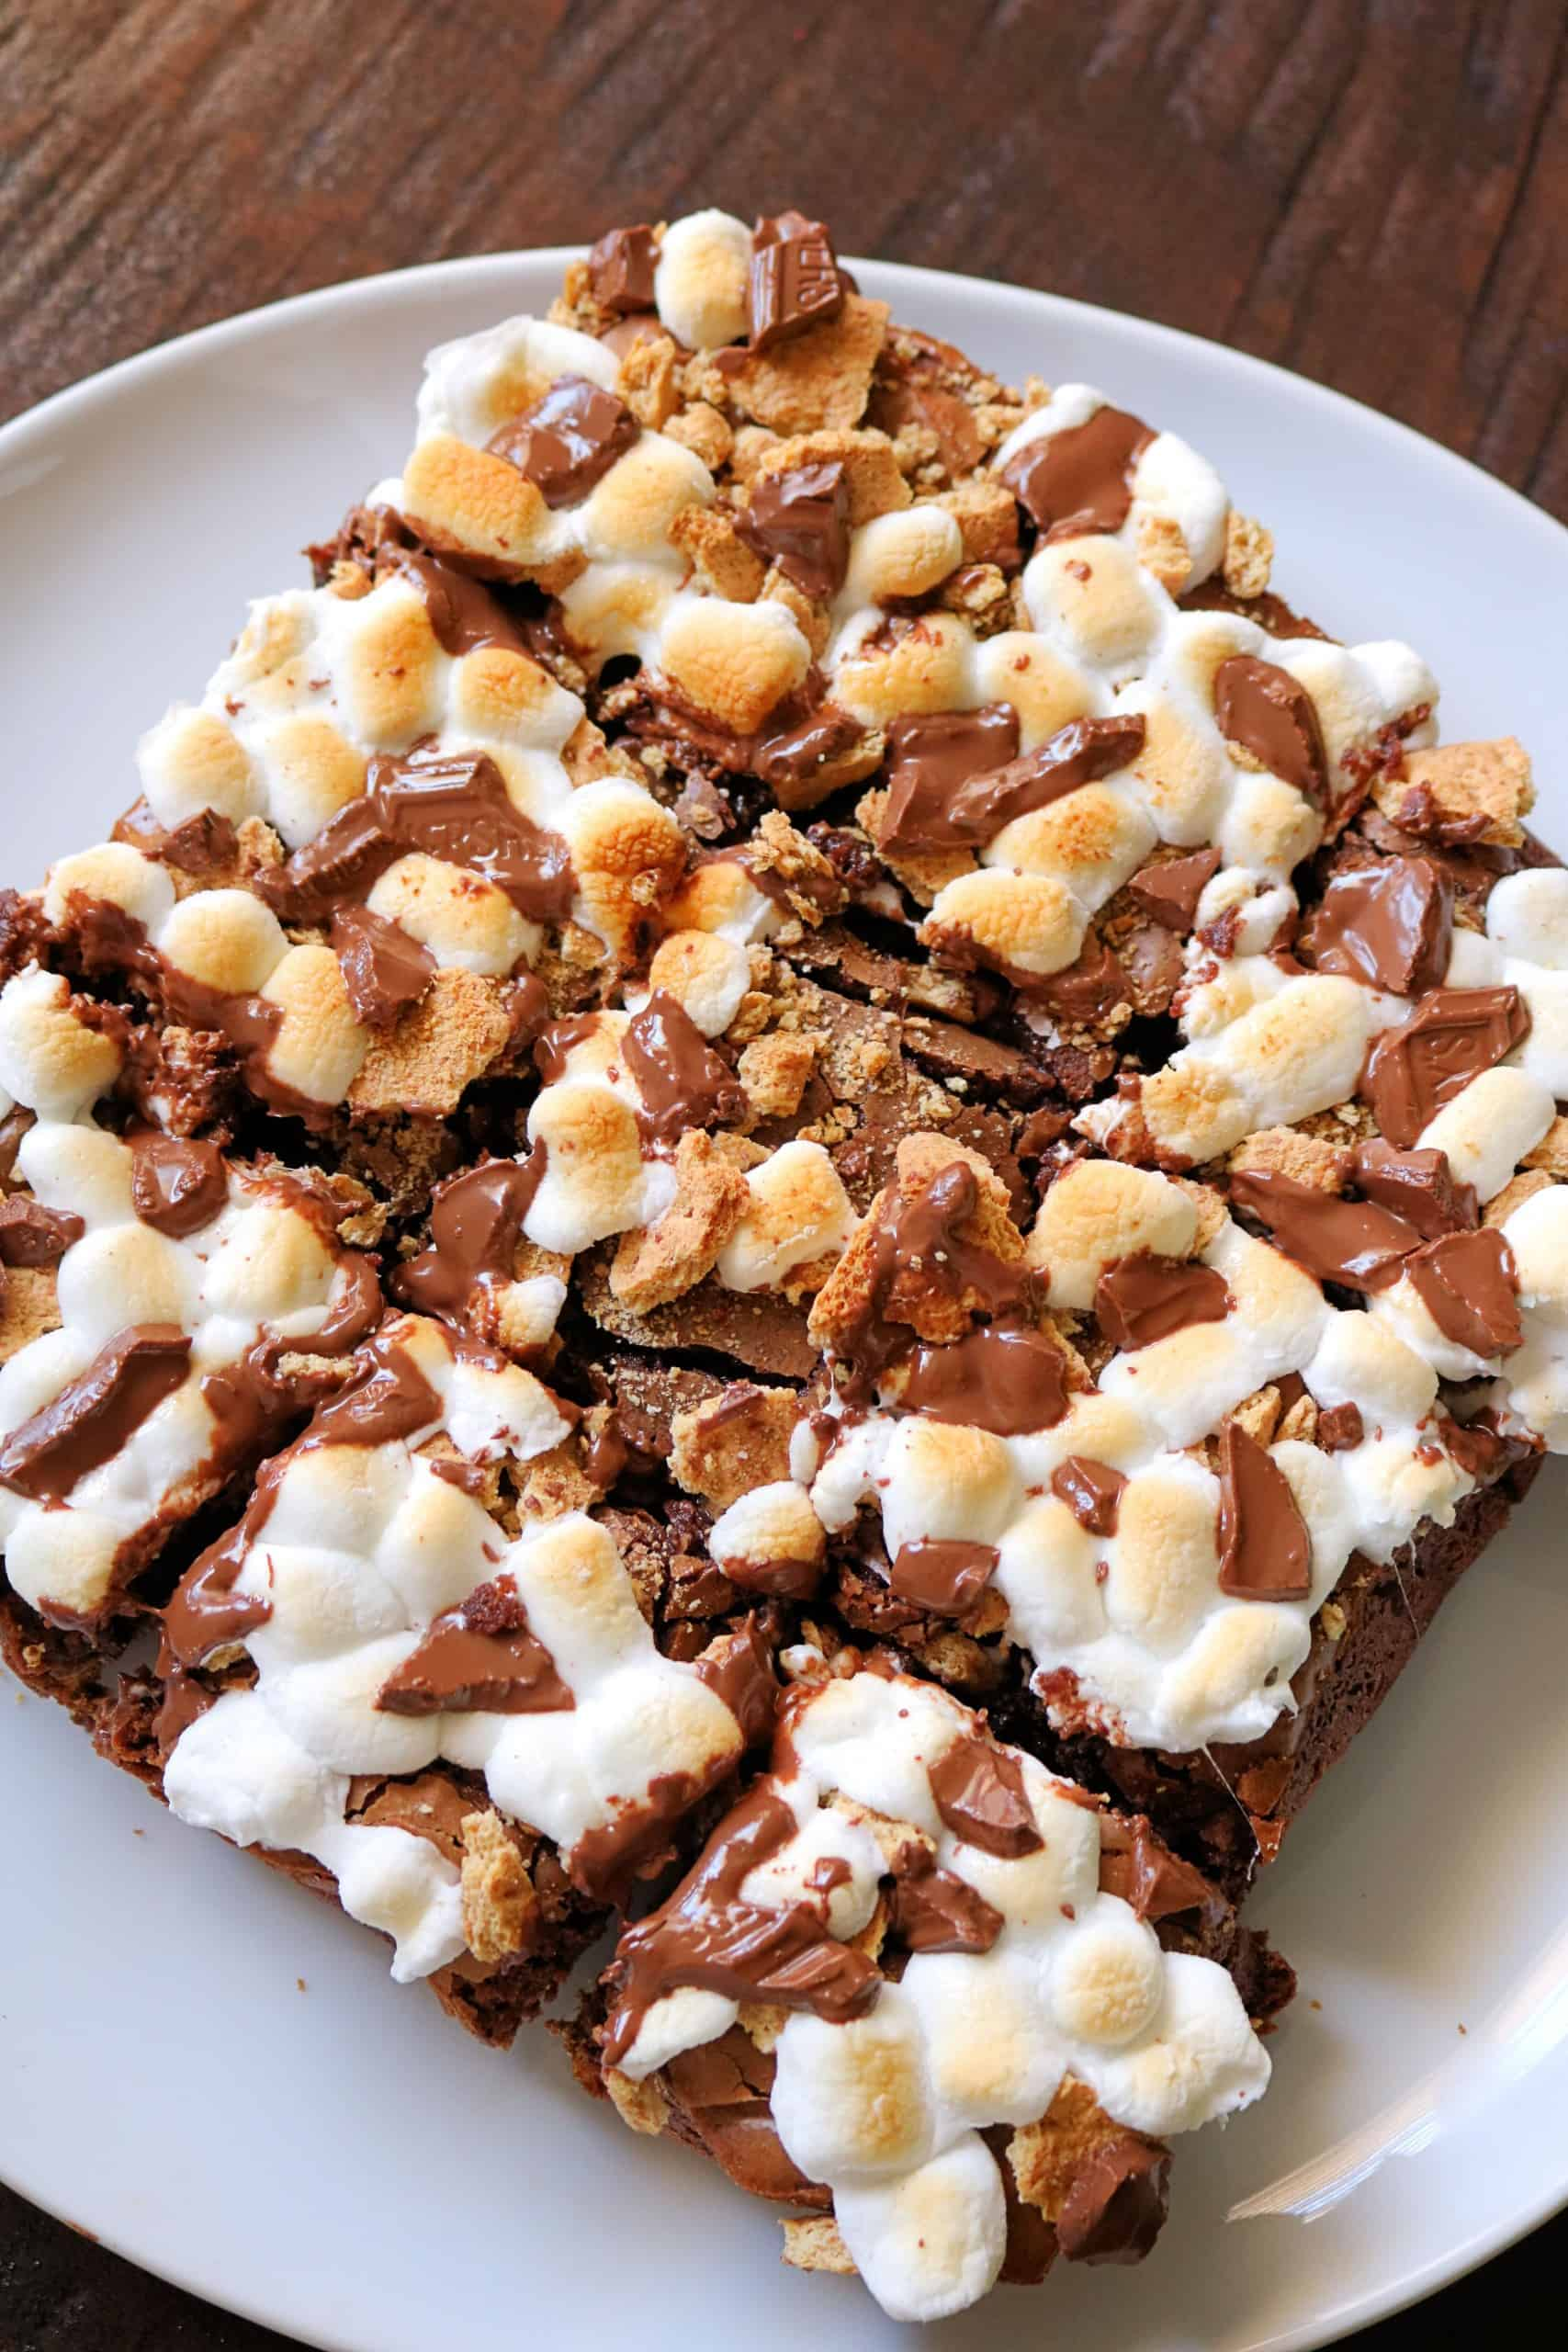 These Easy Fudge S'mores Brownies made from a box mix are incredibly delicious and decadent! A graham cracker crust is covered with a layer of rich, fudgy brownies with chocolate chips and topped with toasted miniature marshmallows, chopped up Hershey's bars, and crushed graham cracker pieces. The perfect summertime s'mores dessert! #brownies #smores  #dessert #easybrownies